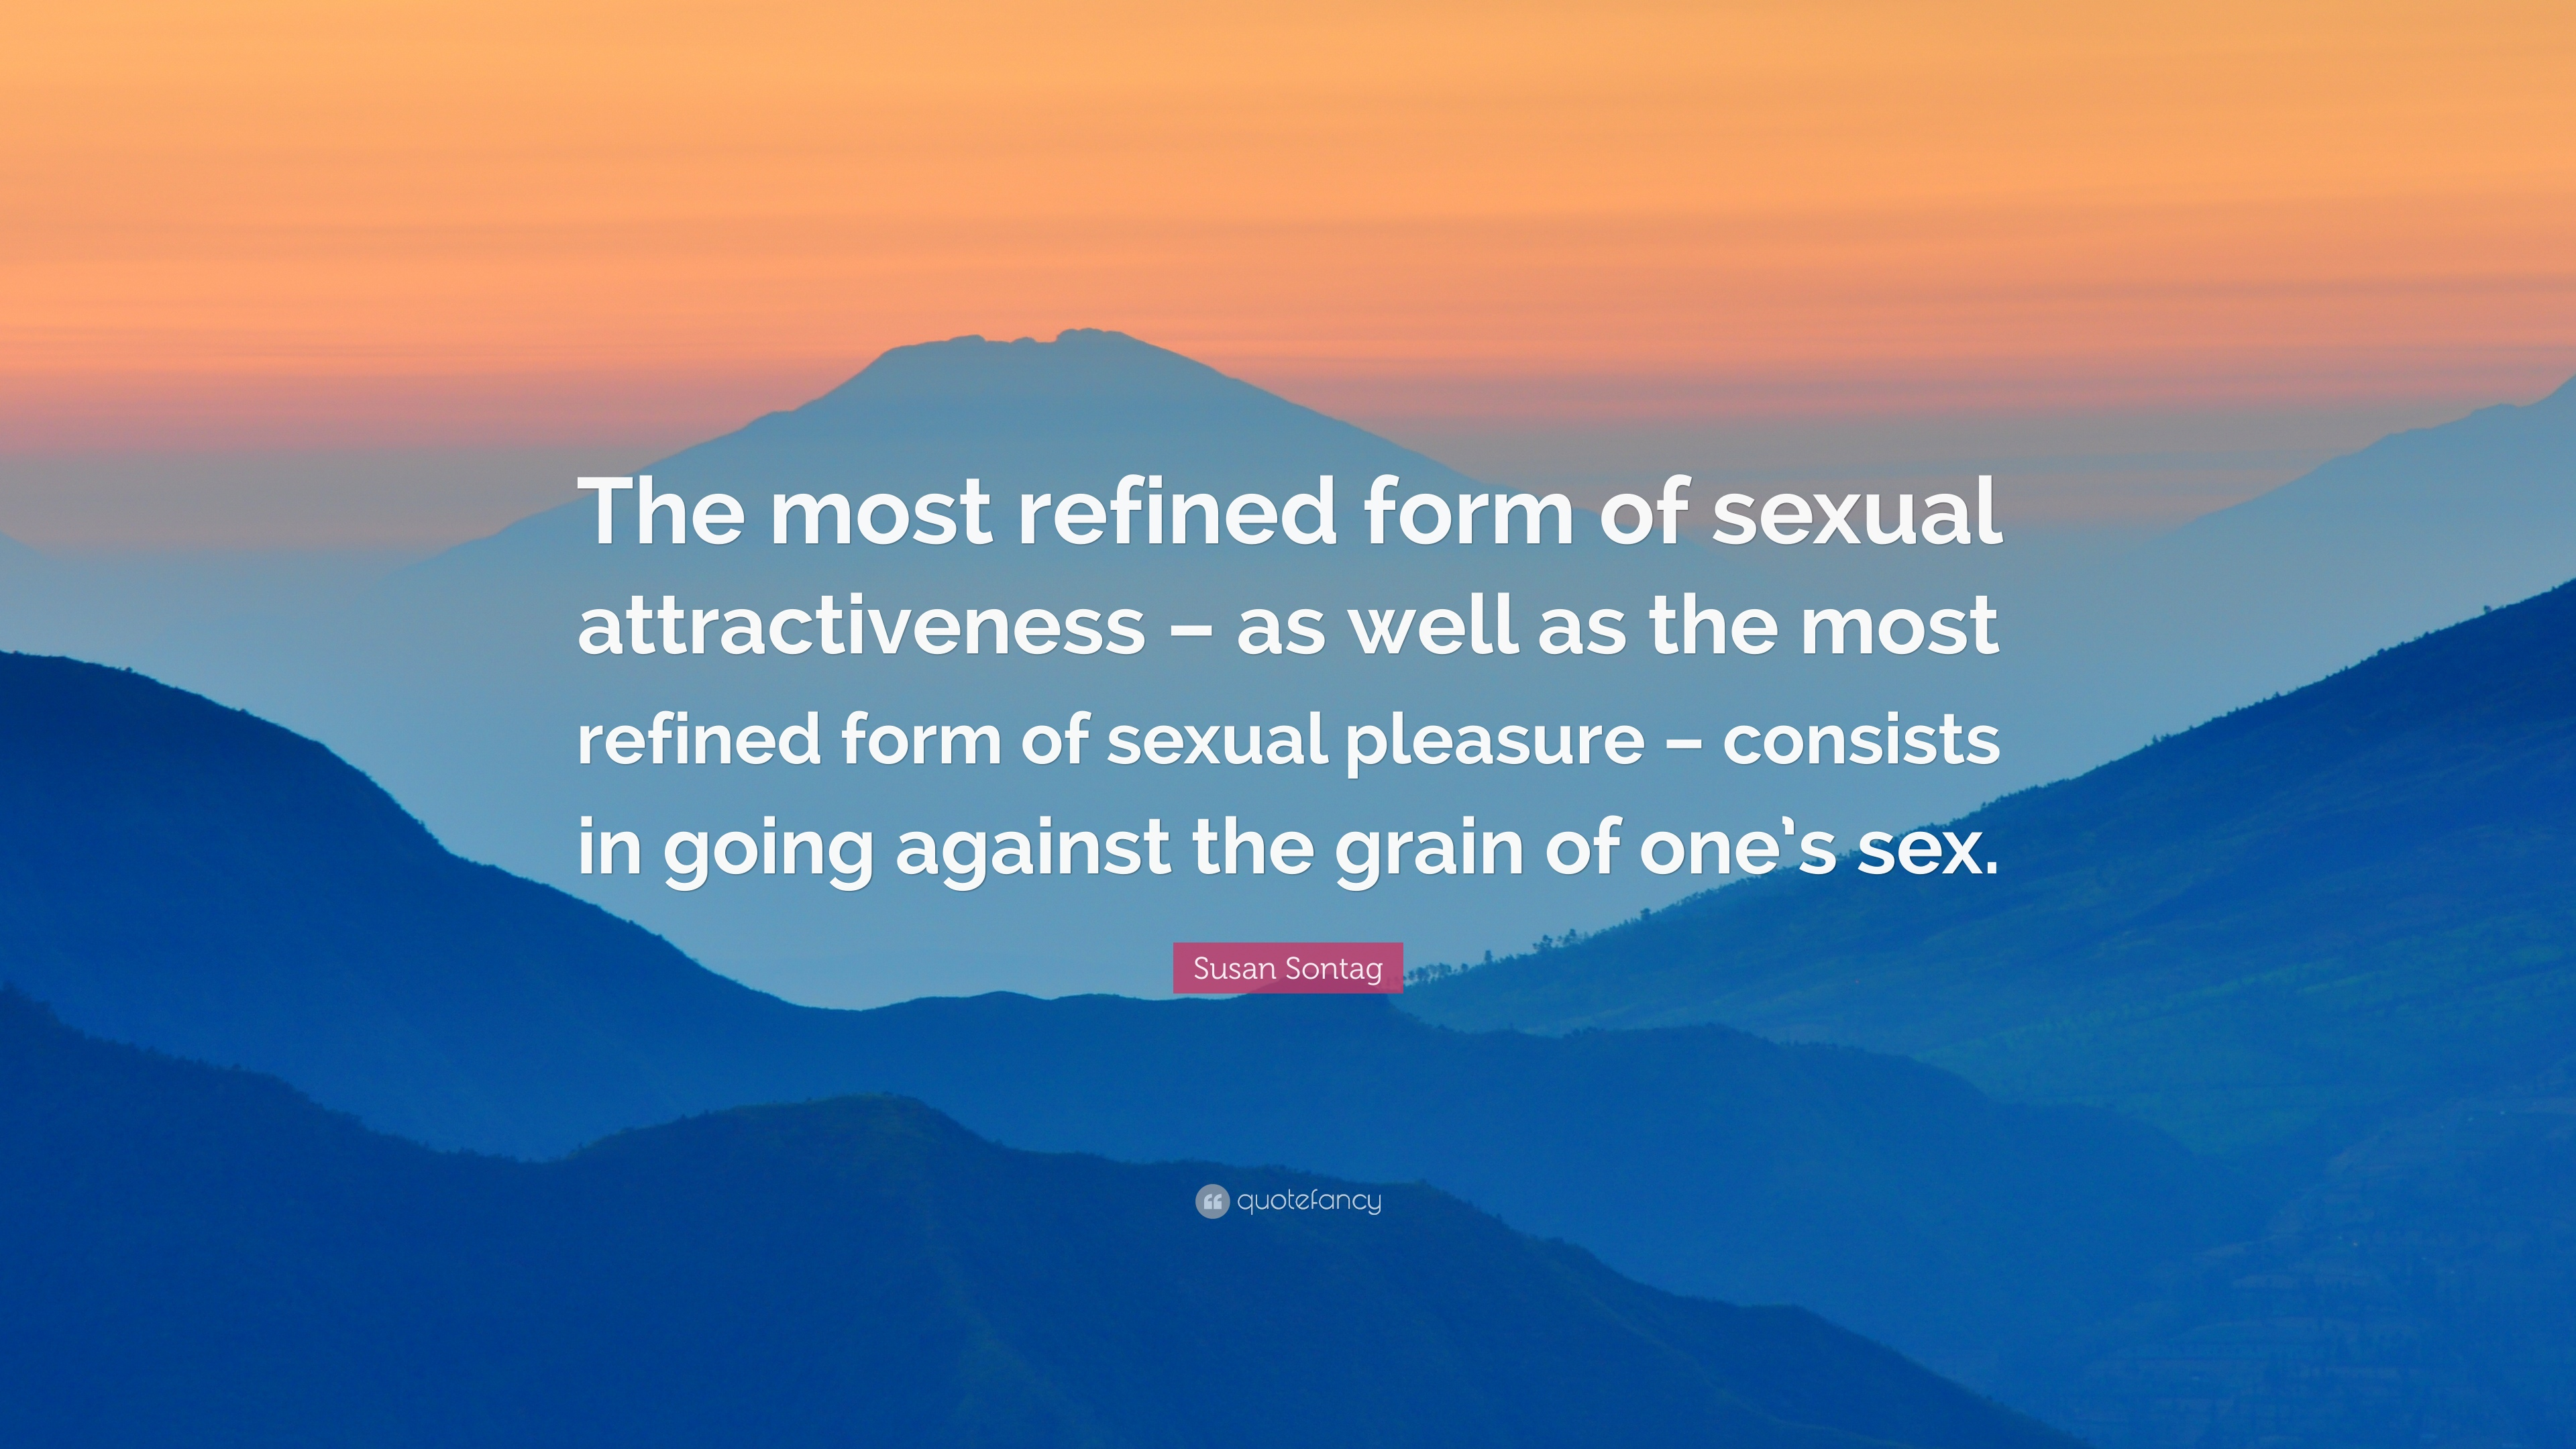 Sexual pleasure is the most